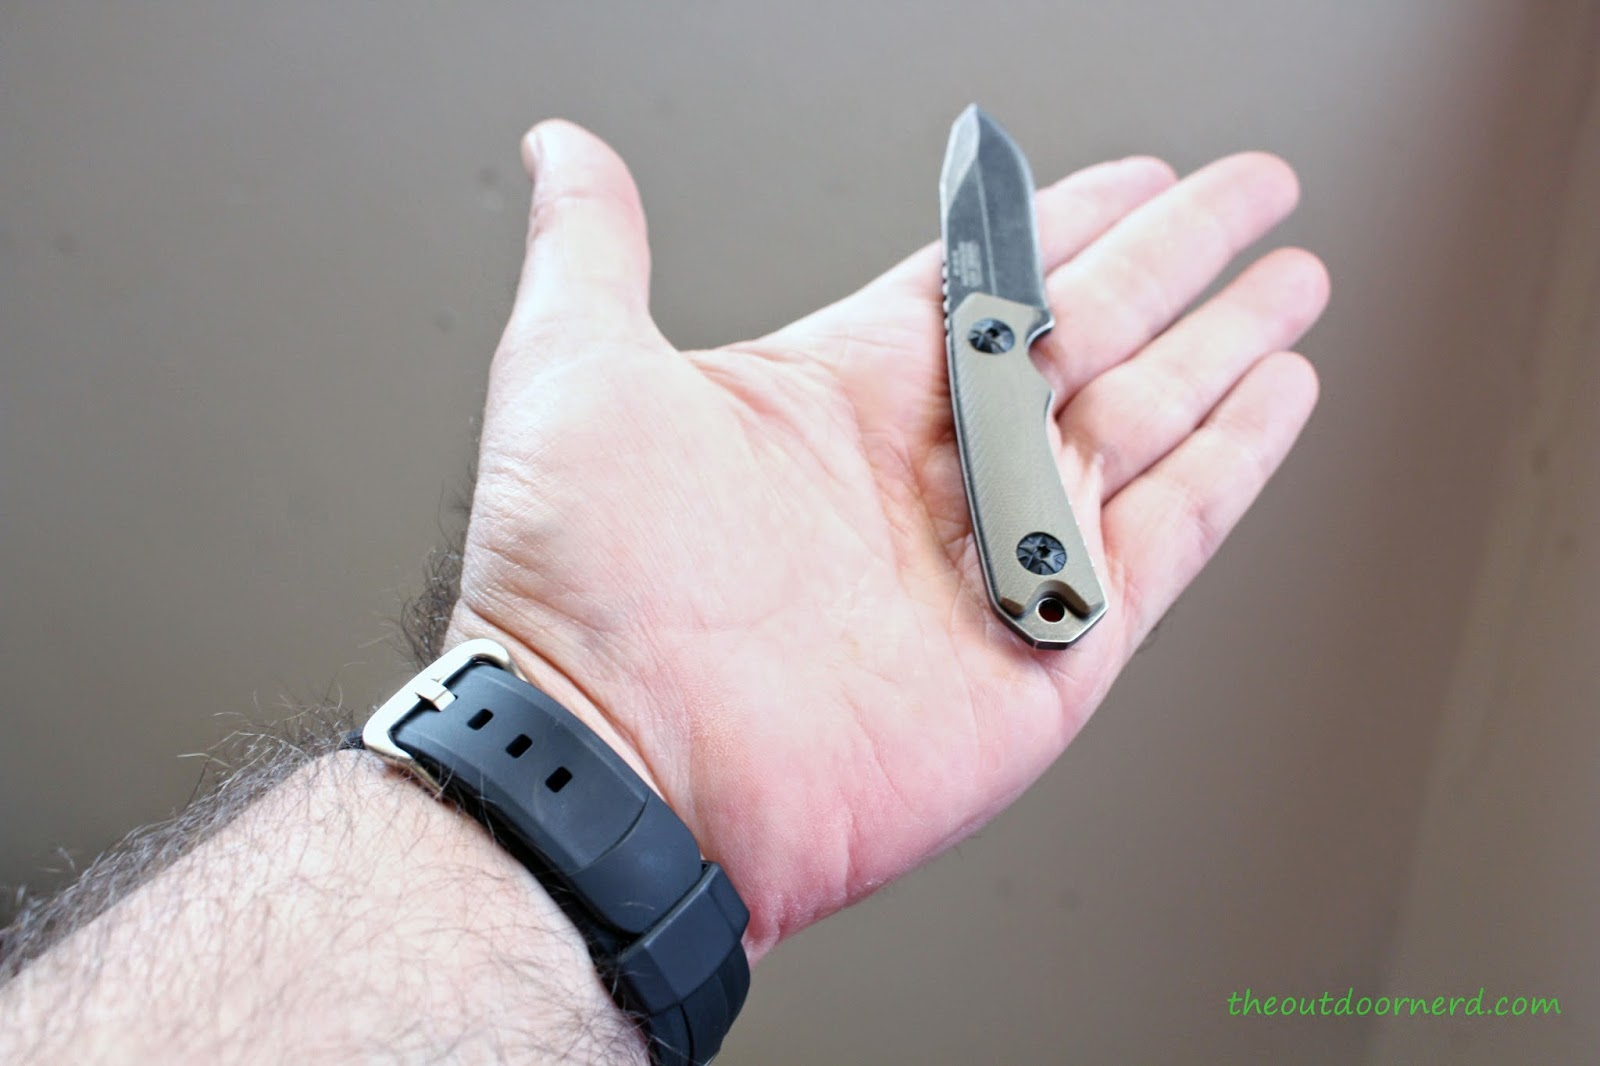 MTECH MT-20-30 Fixed Blade Knife: In Hand 2